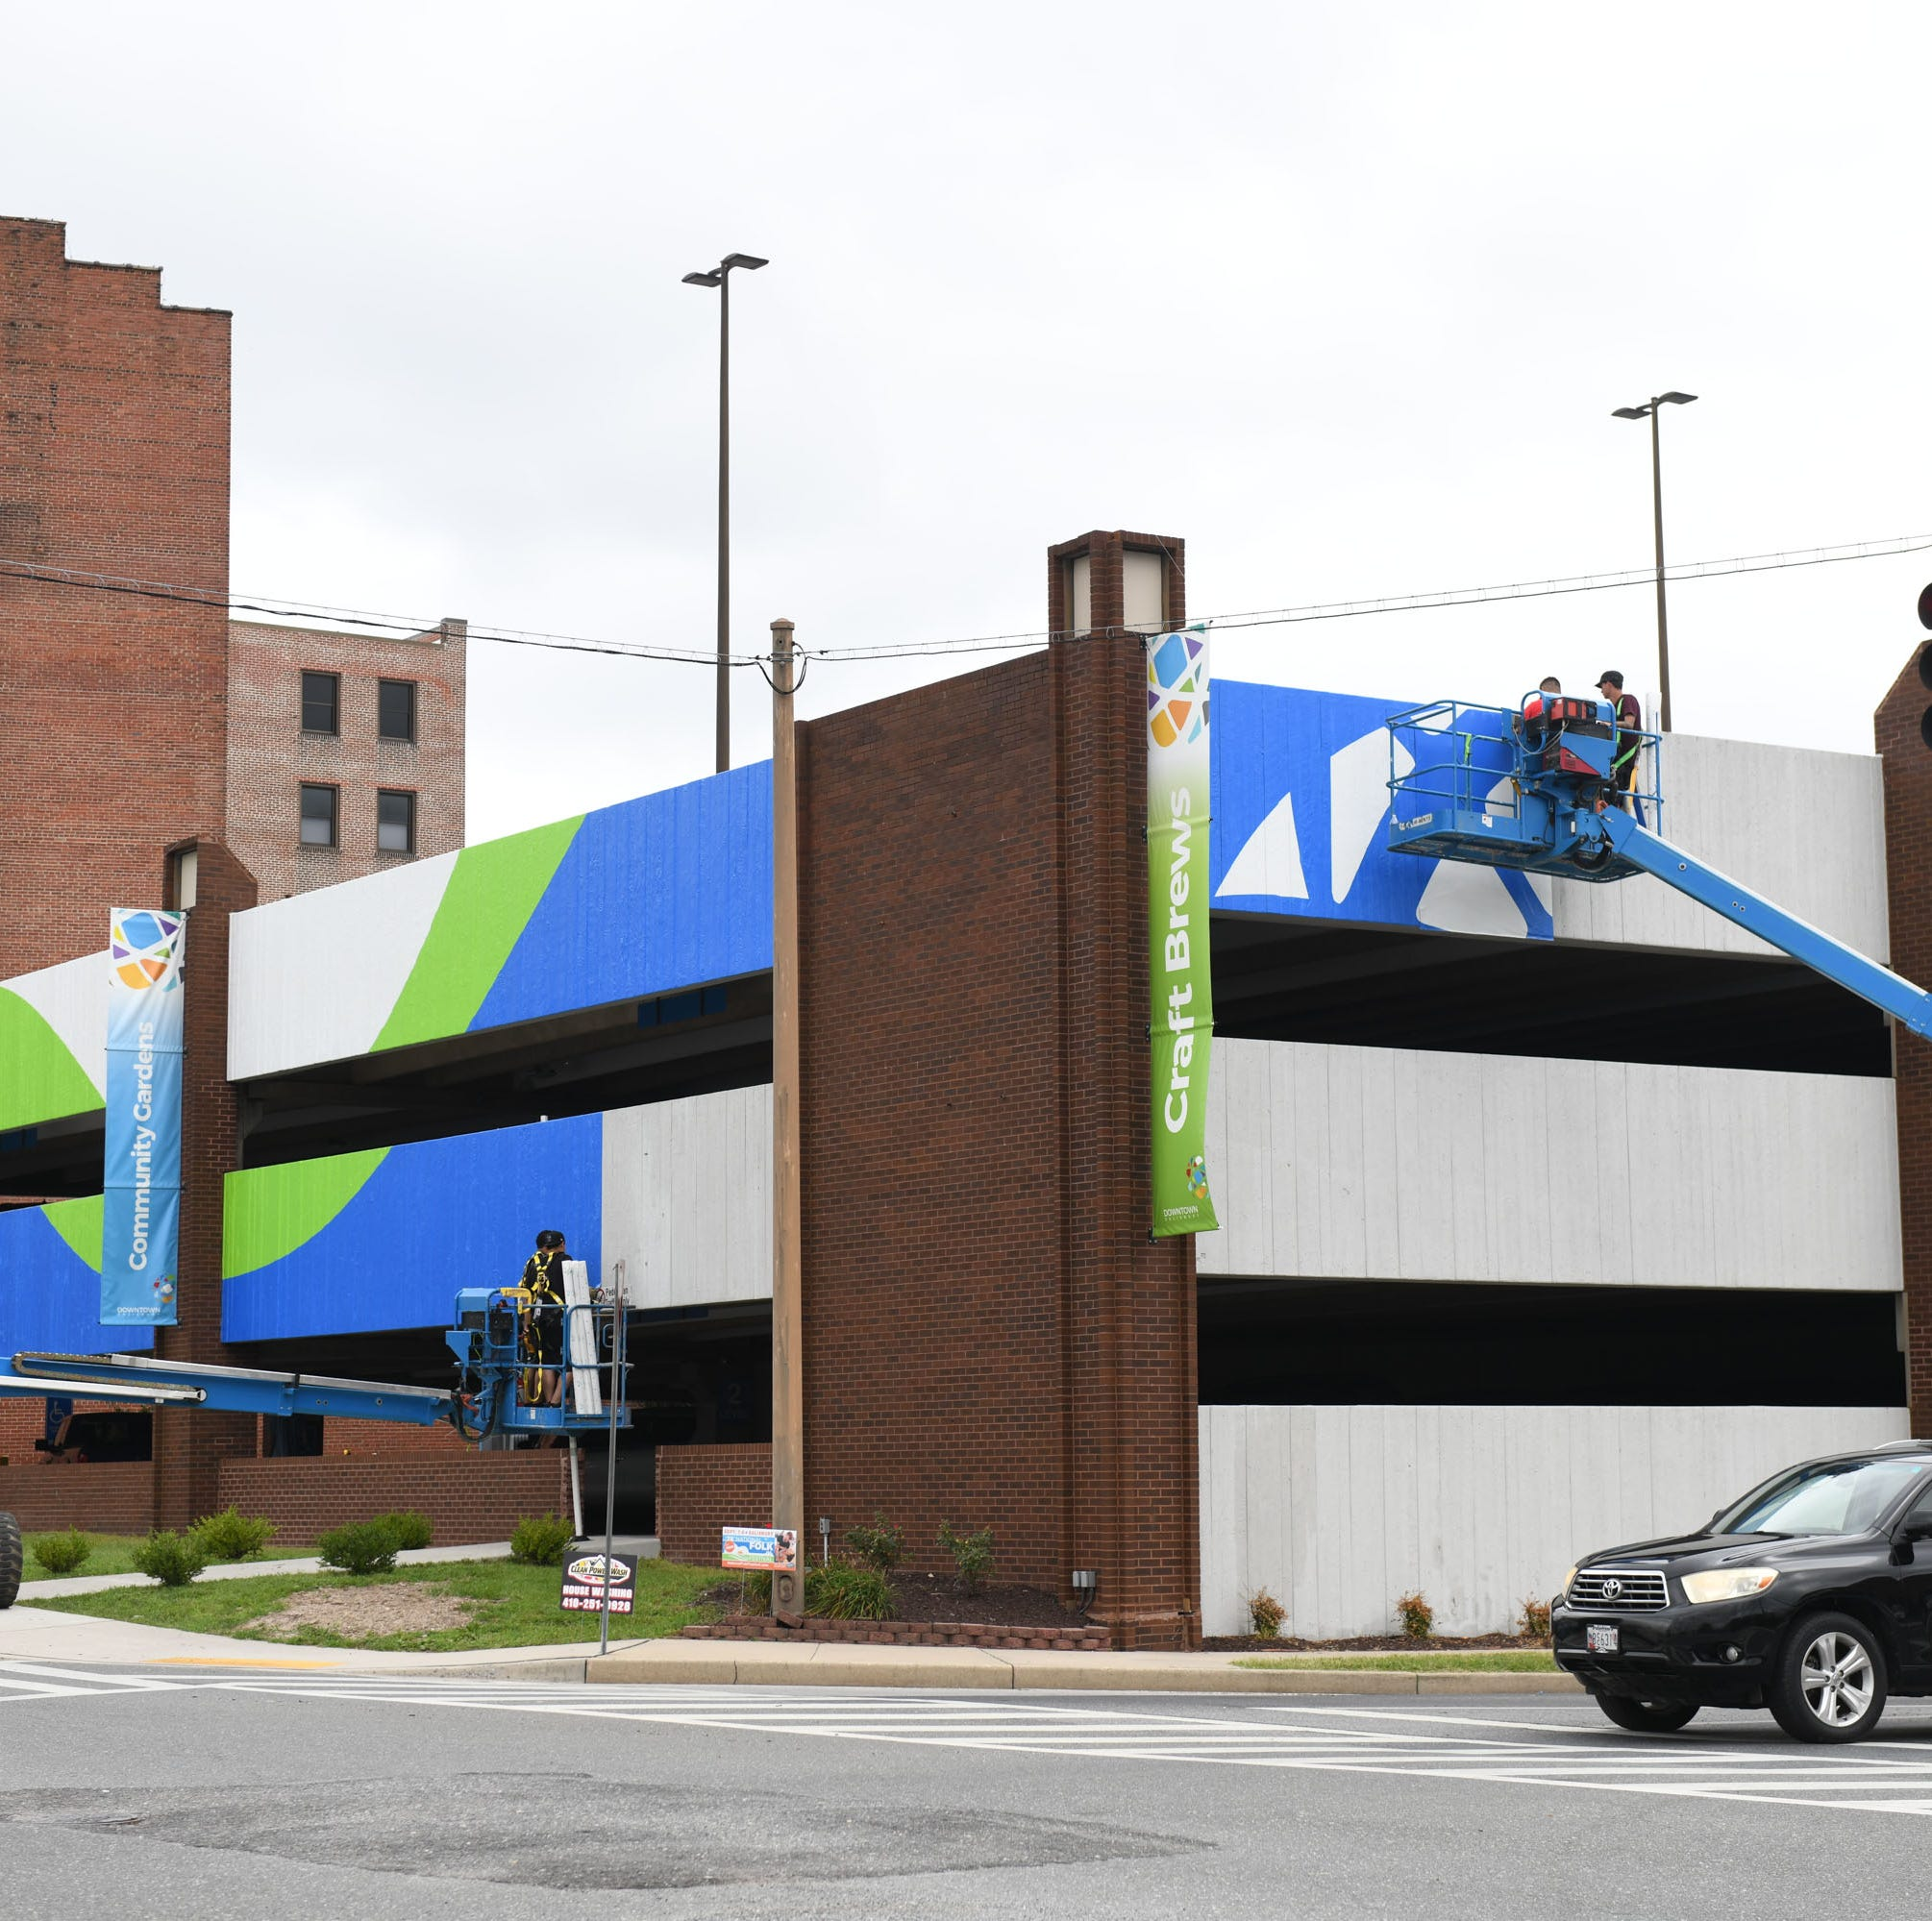 A contractor began wrapping the Salisbury parking garage in a material that will adhere to the concrete. The design incorporates colors and patterns used in the city's new marketing materials and logo. Improvements are being made in time for the upcoming National Folk Festival.